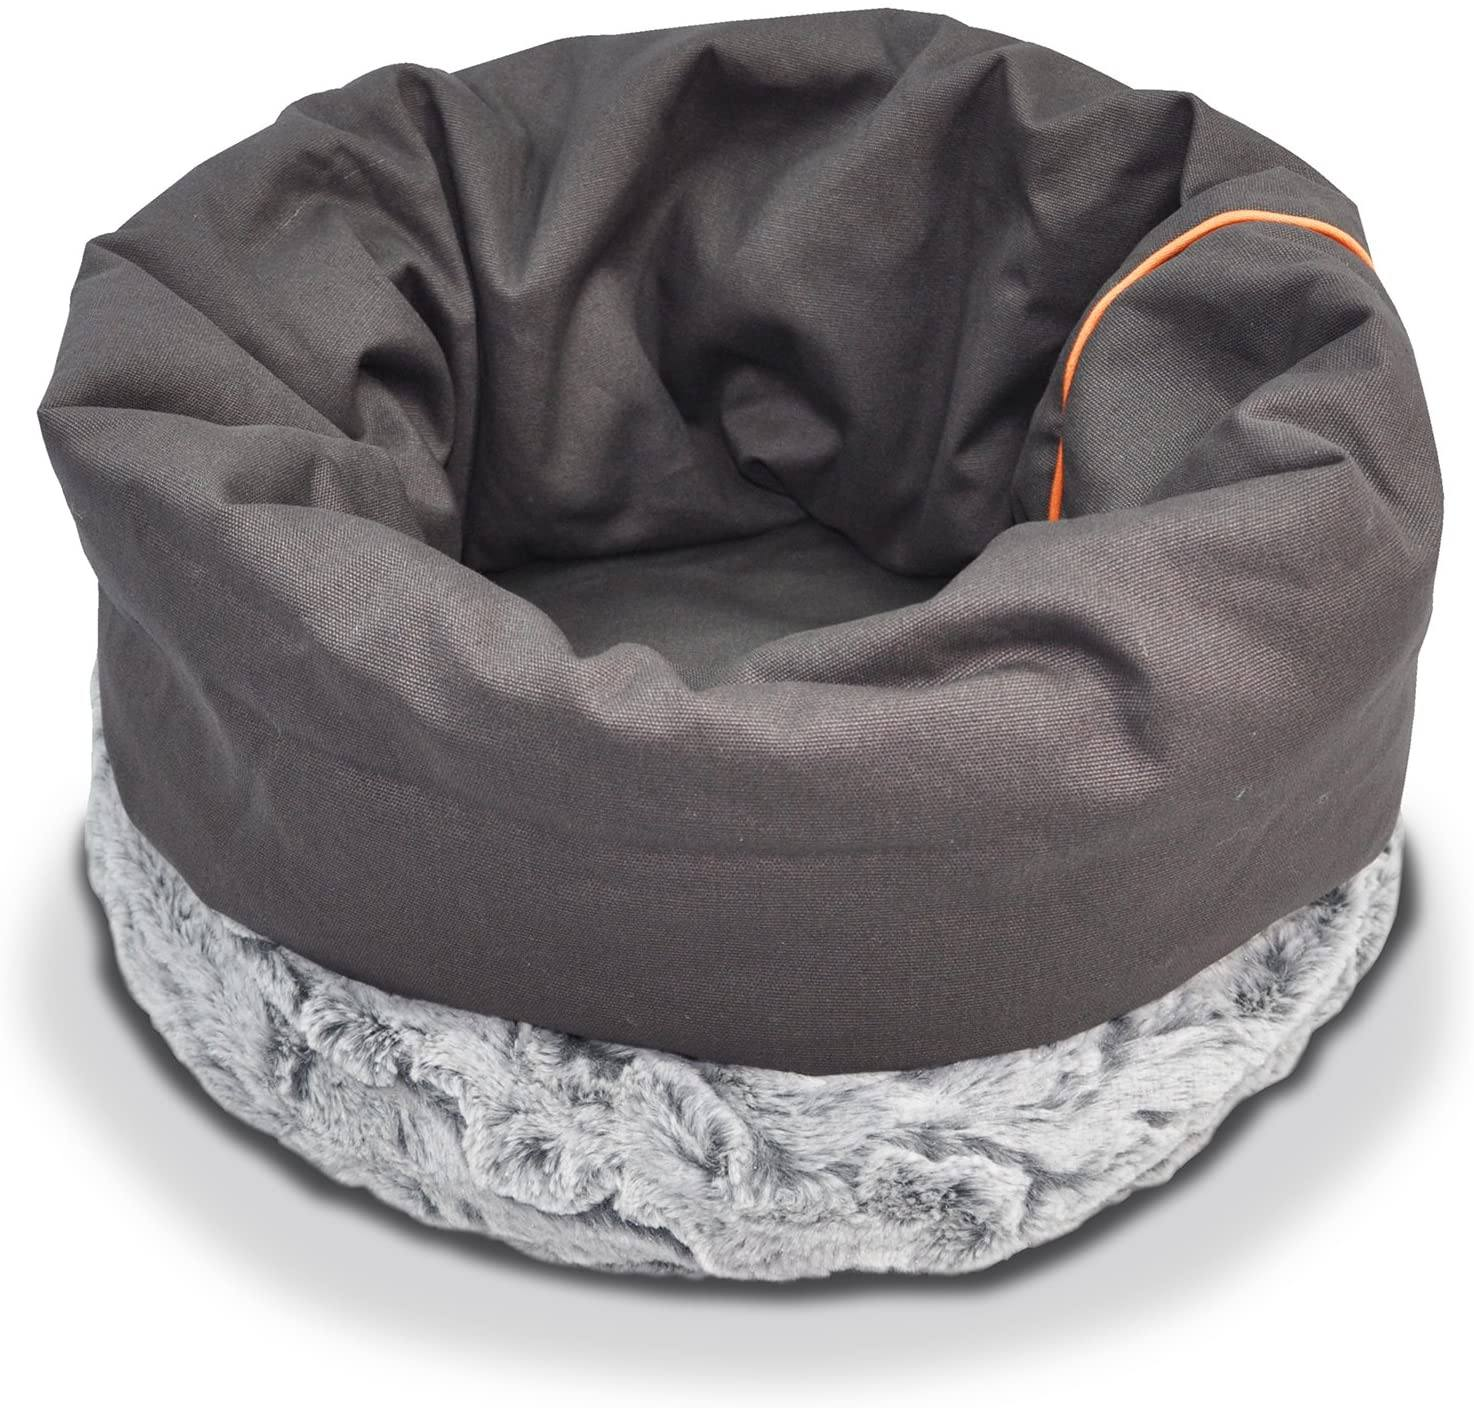 P.L.A.Y. Snuggle Pet Bed (2 colors) Dog Bed PLAY